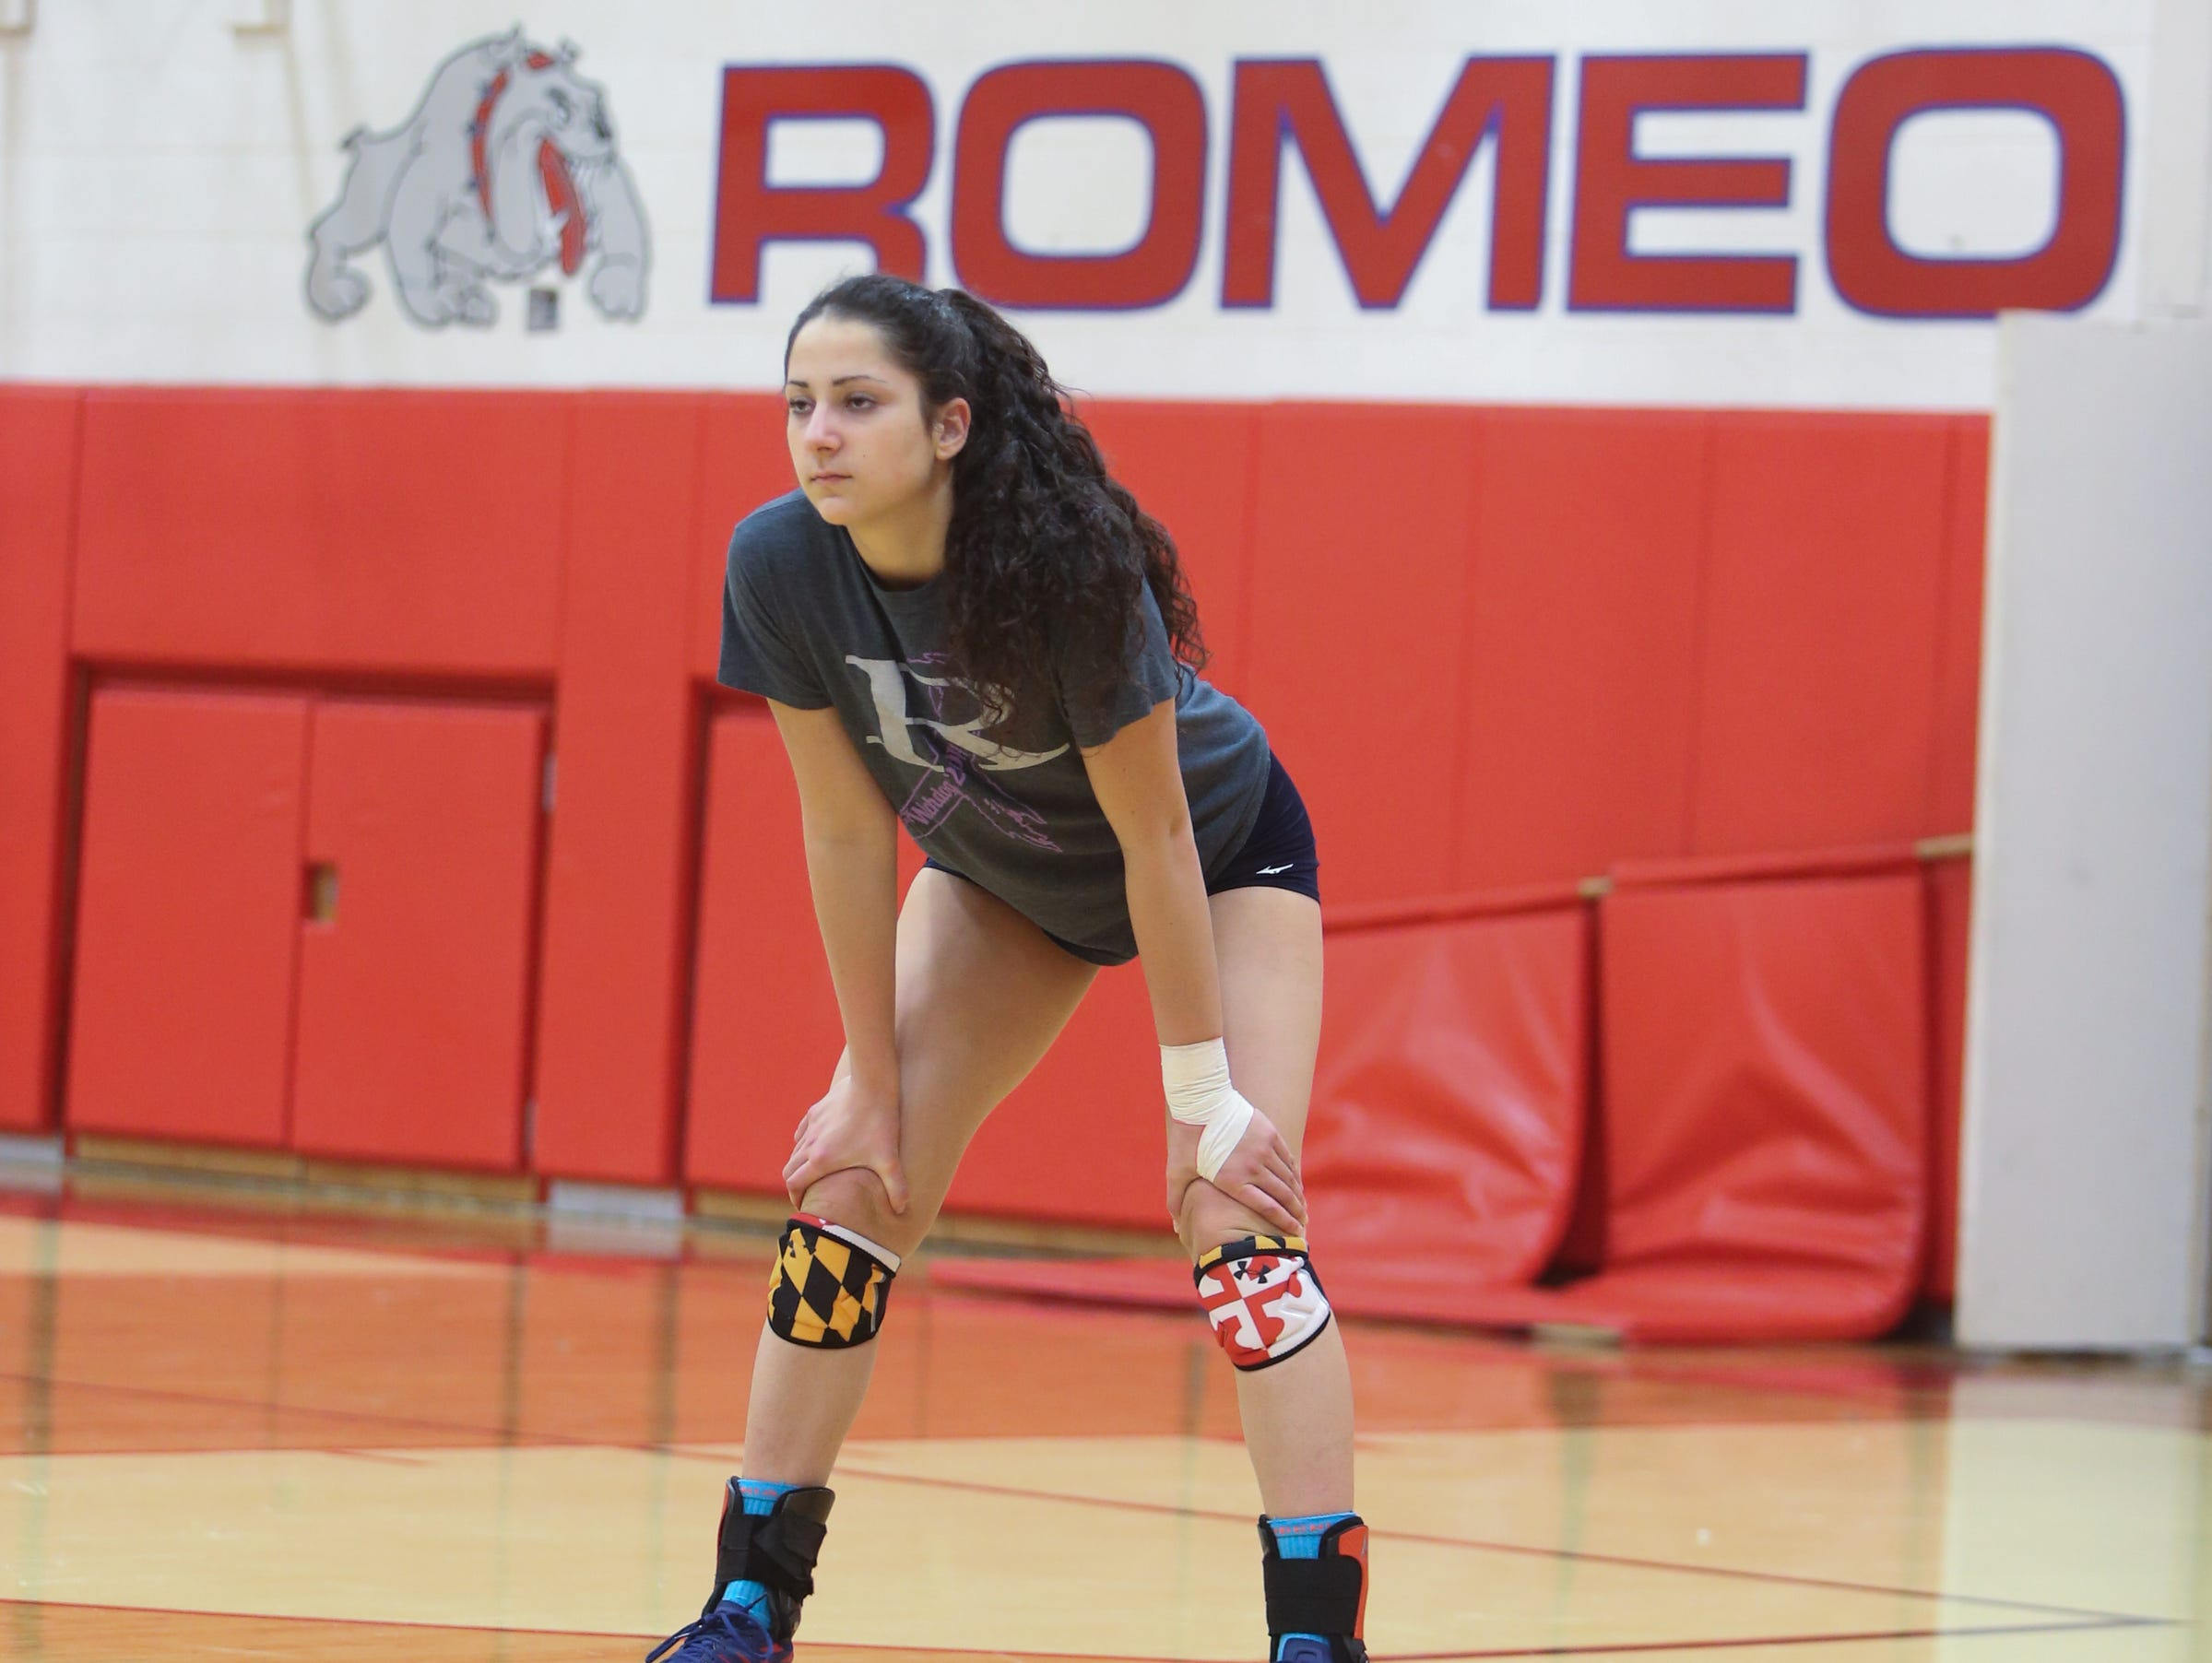 Gia Milana a senior on the Romer high school volleyball team practices Monday, October 26, 2015 at Romeo high school in Romeo Michigan.